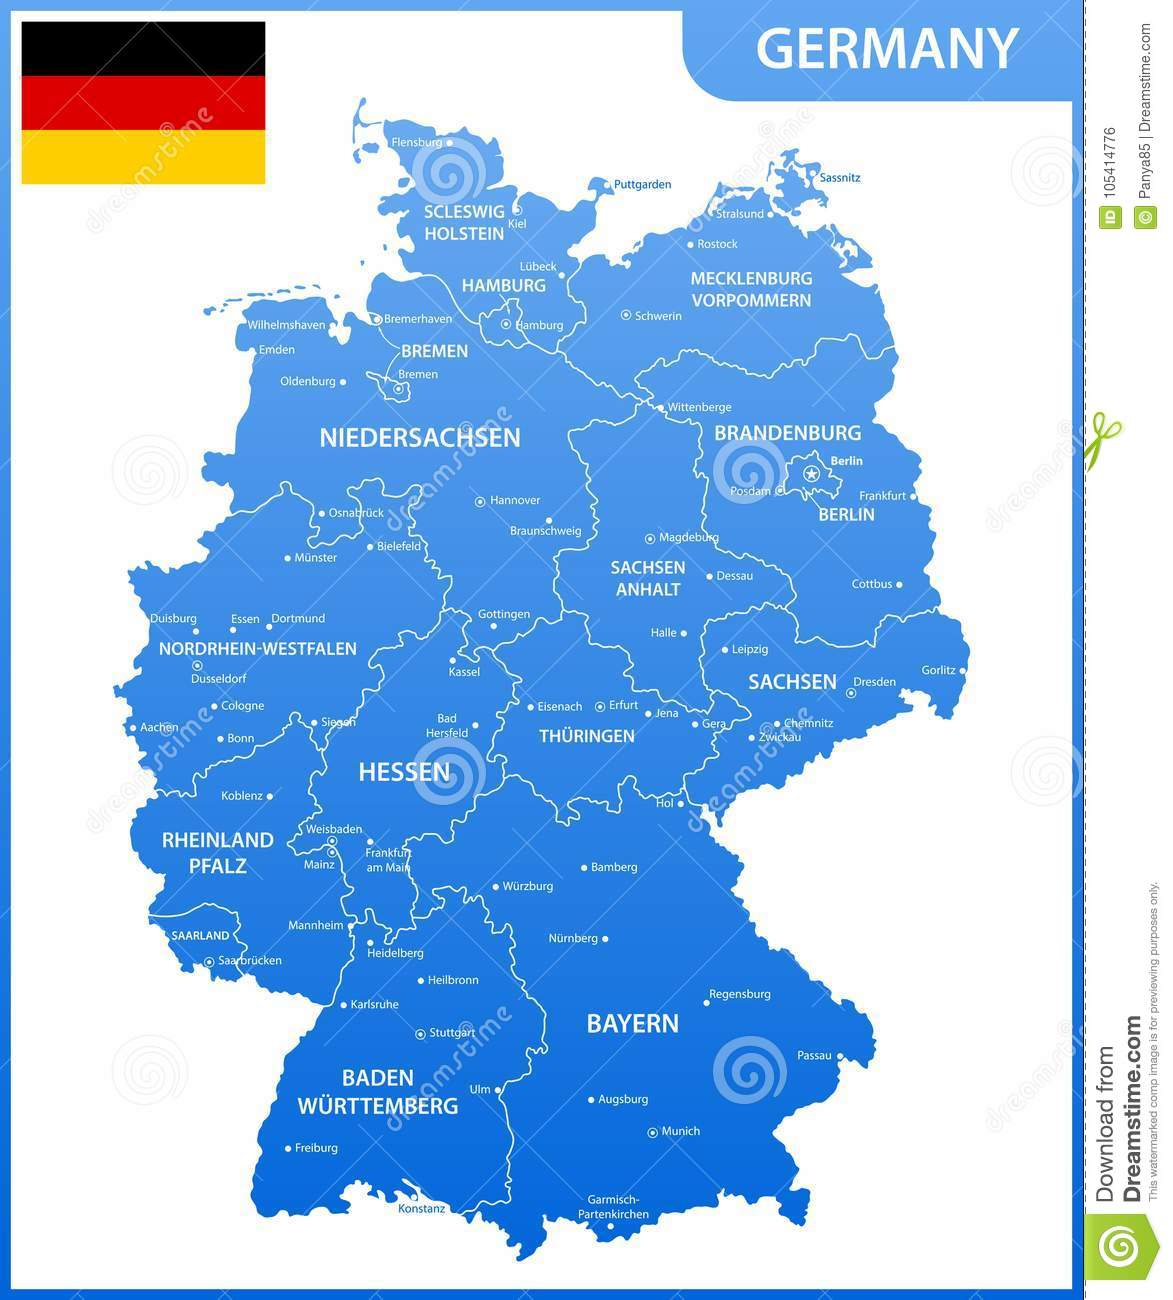 The Detailed Map Of The Germany With Regions Or States And Cities